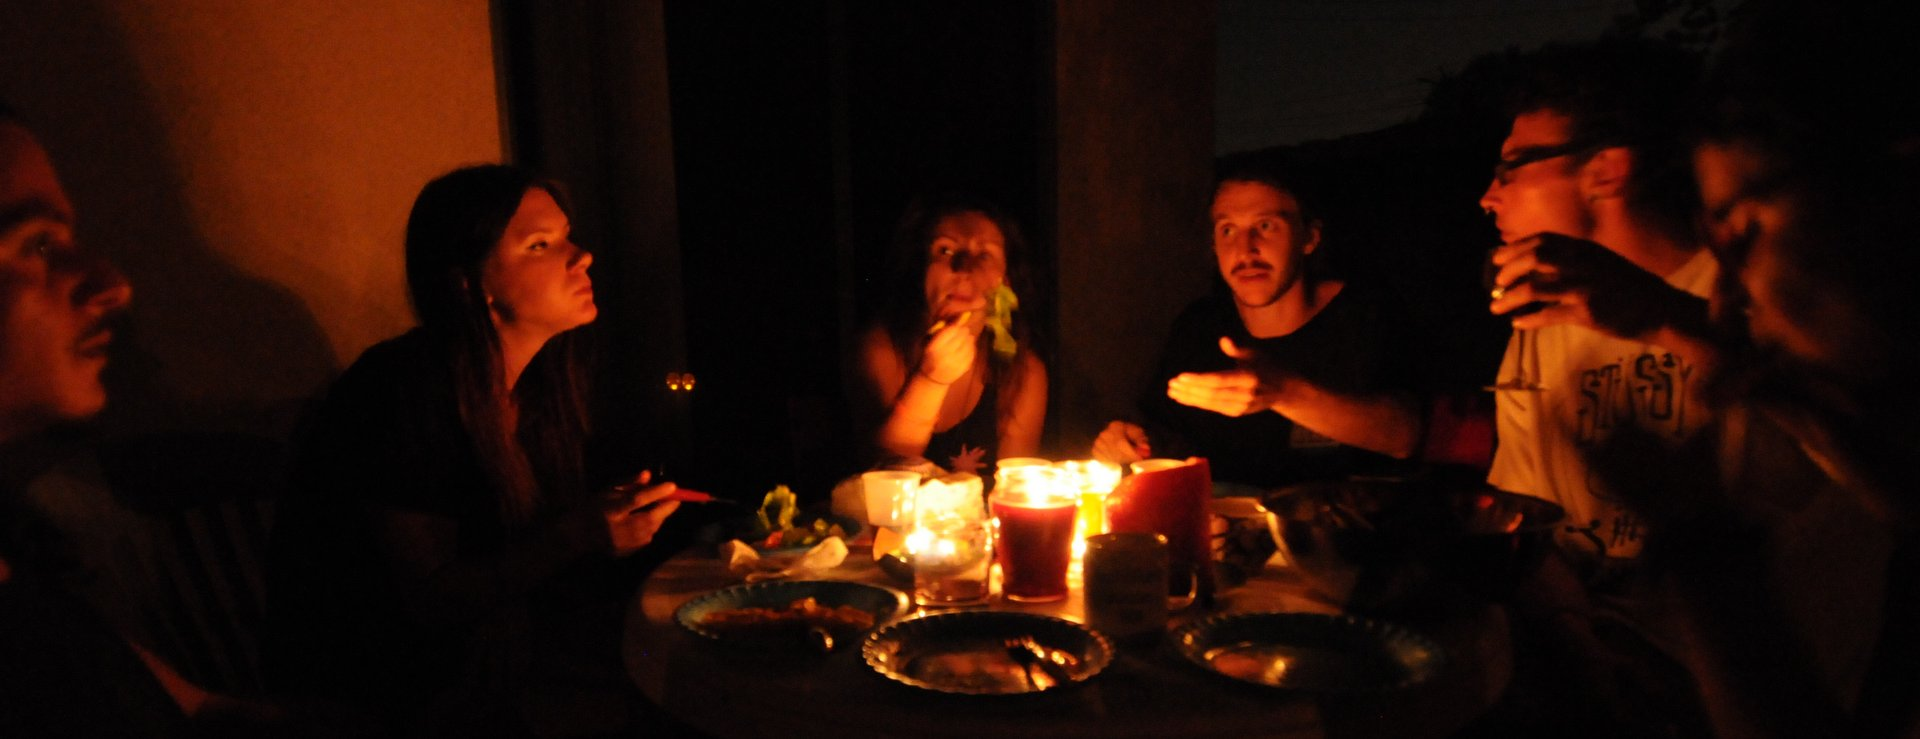 Night photo of people sitting around a candlelight table